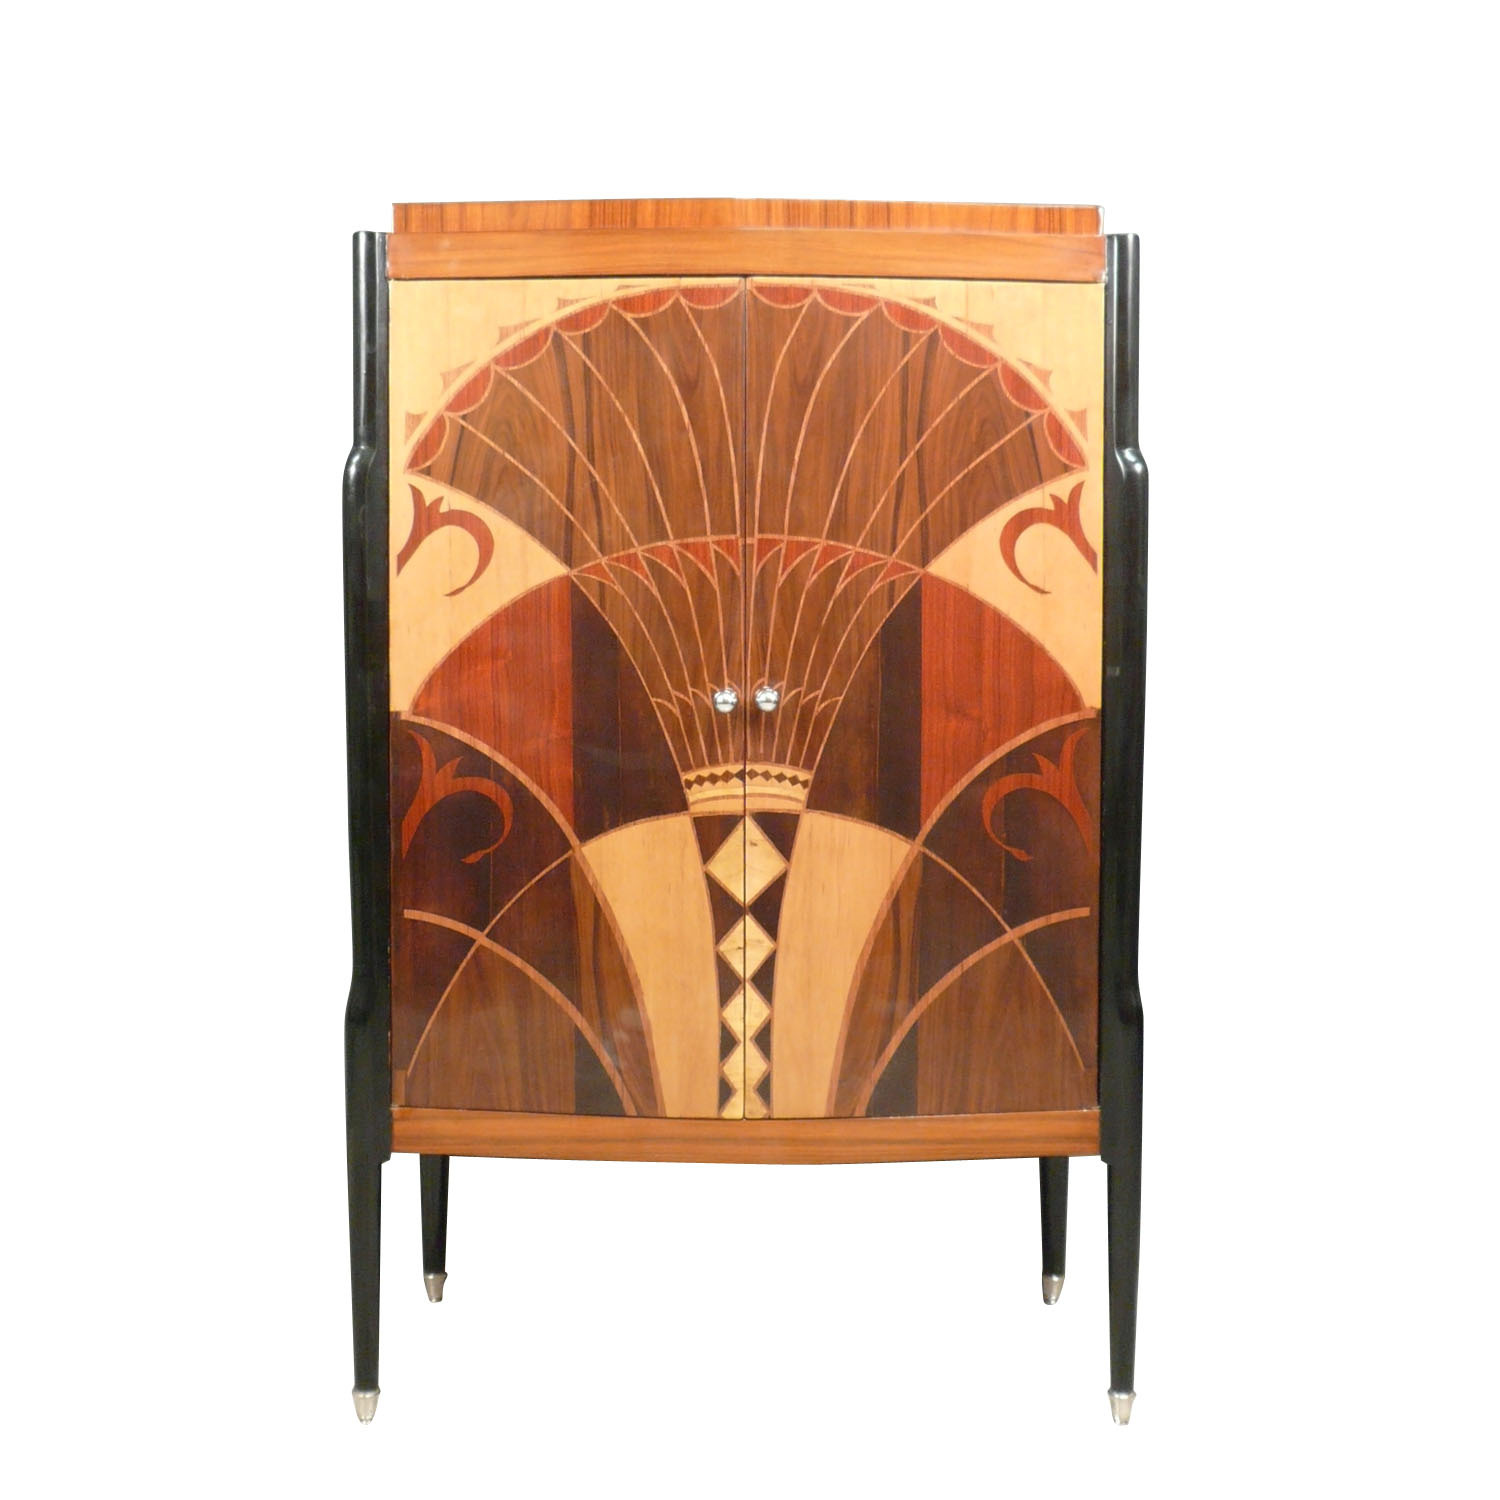 Art deco furniture photo gallery console desk for Deco meuble furniture richibucto